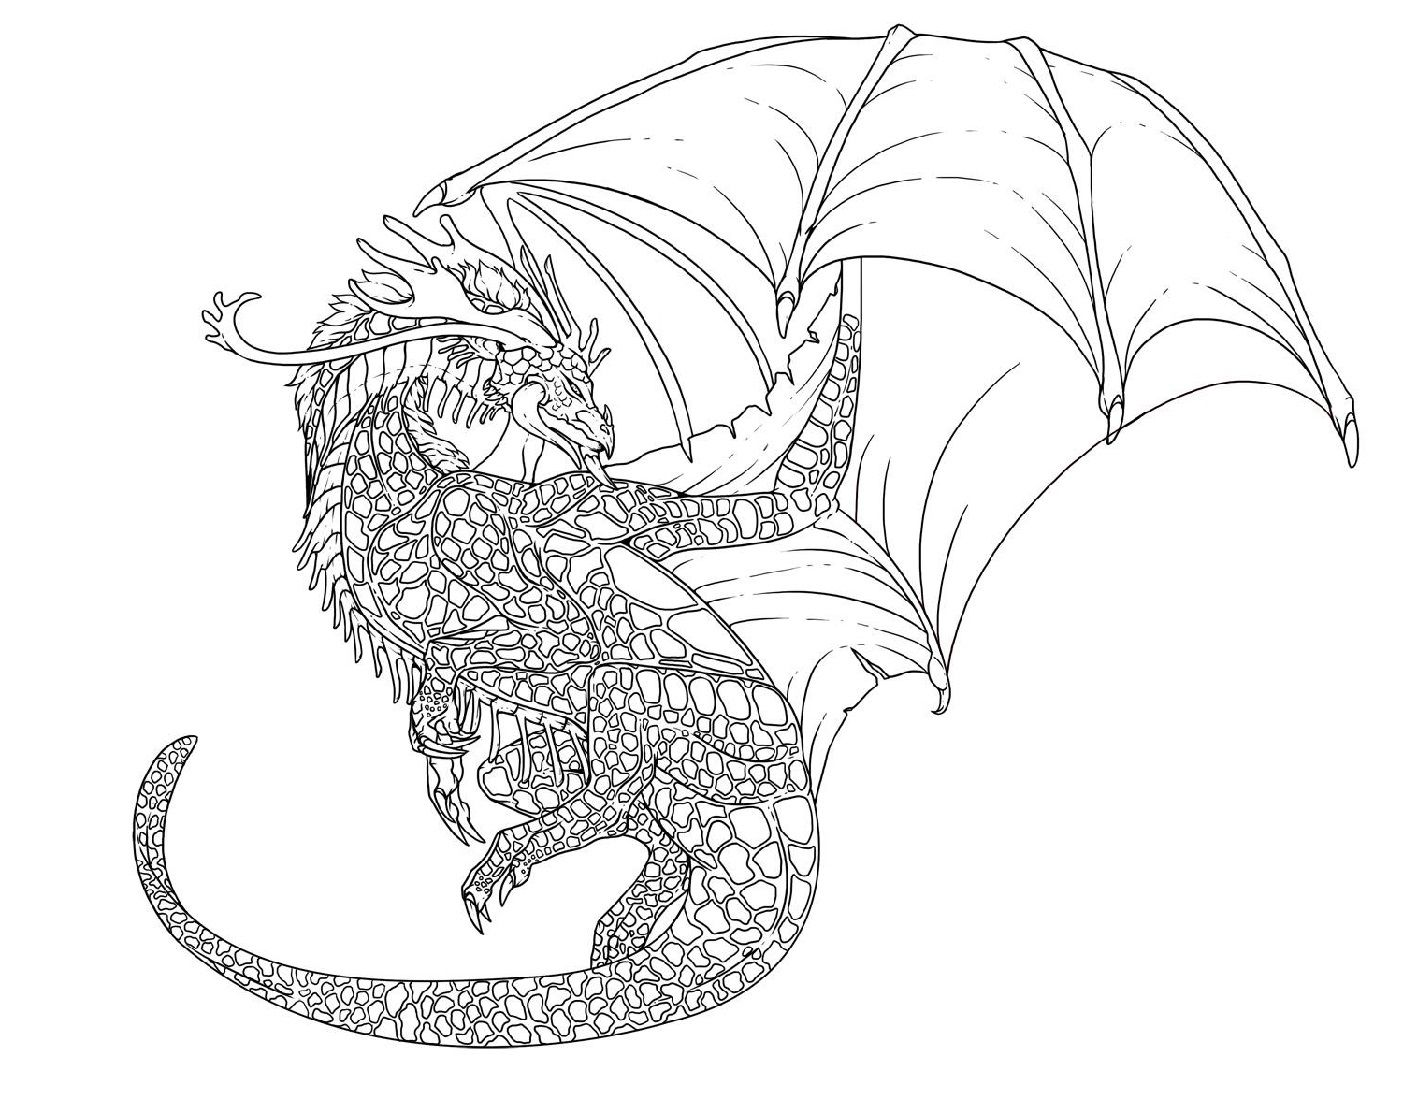 Awesome Dragon Coloring Pages To Print Dragon Coloring Page Coloring Pages To Print Coloring Pages